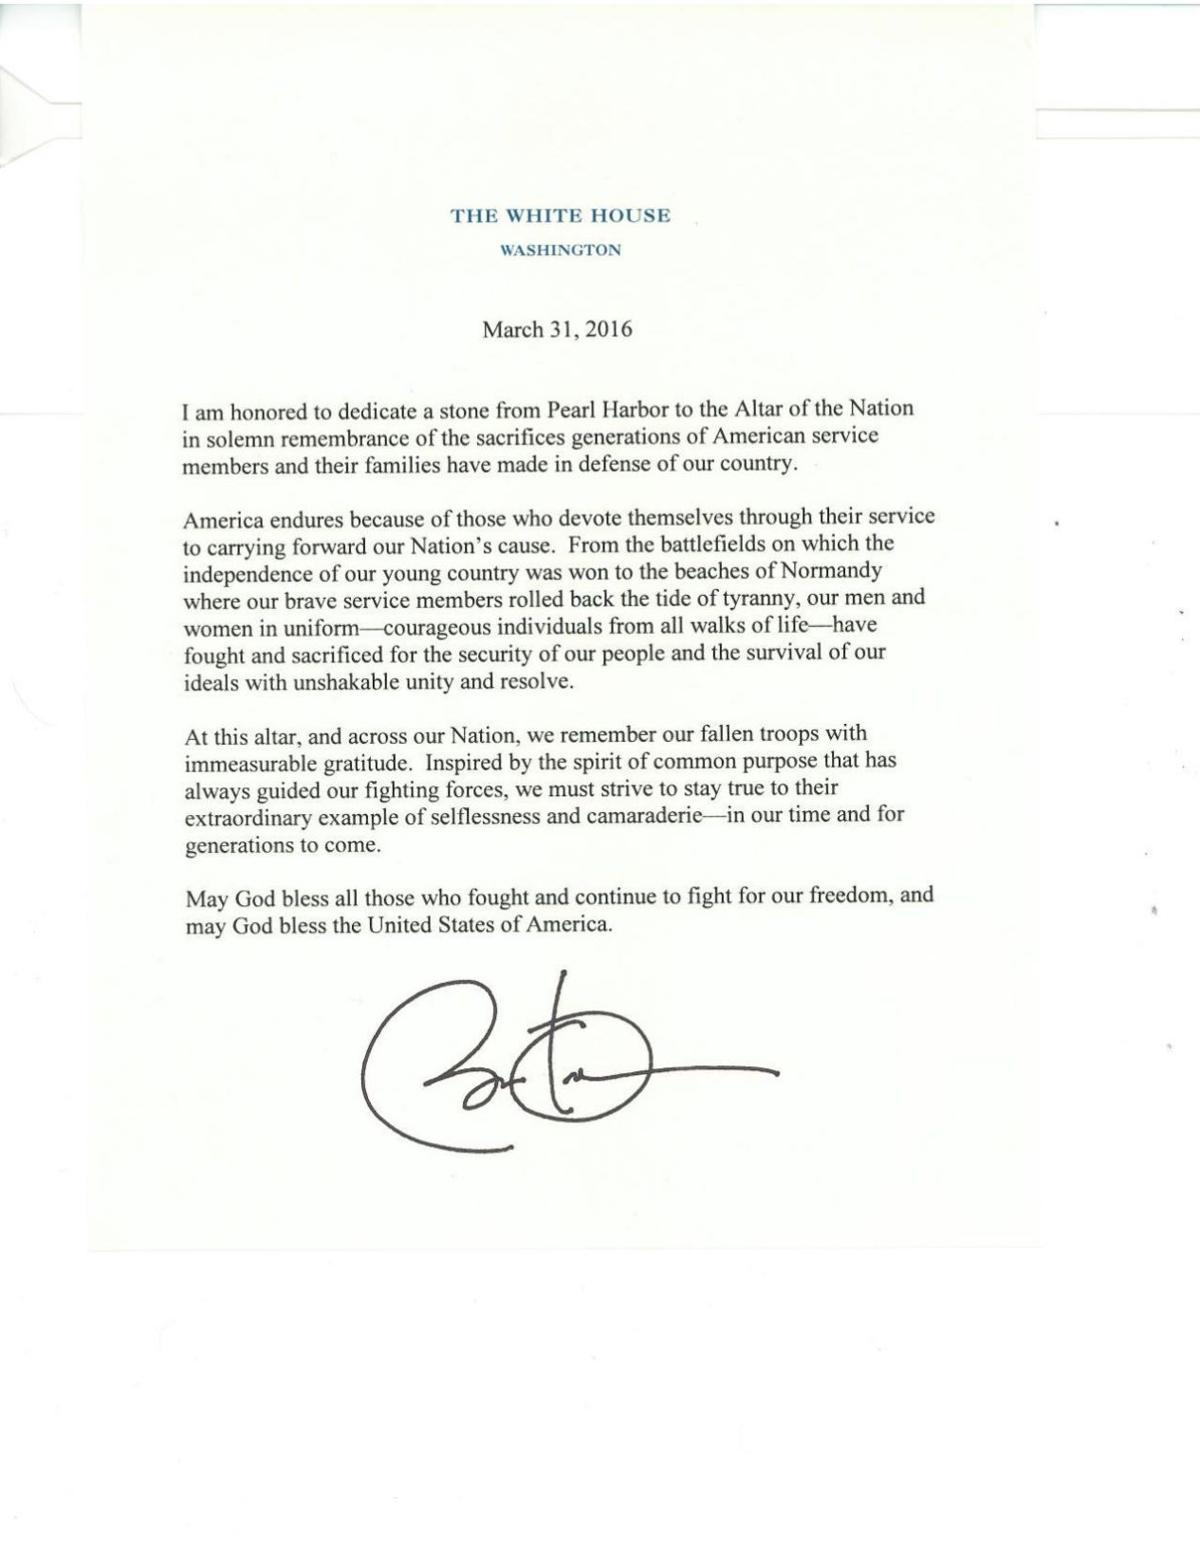 Letter from president barack obama for dedication at cathedral of download pdf letter from president barack obama for dedication at cathedral of the pines spiritdancerdesigns Image collections